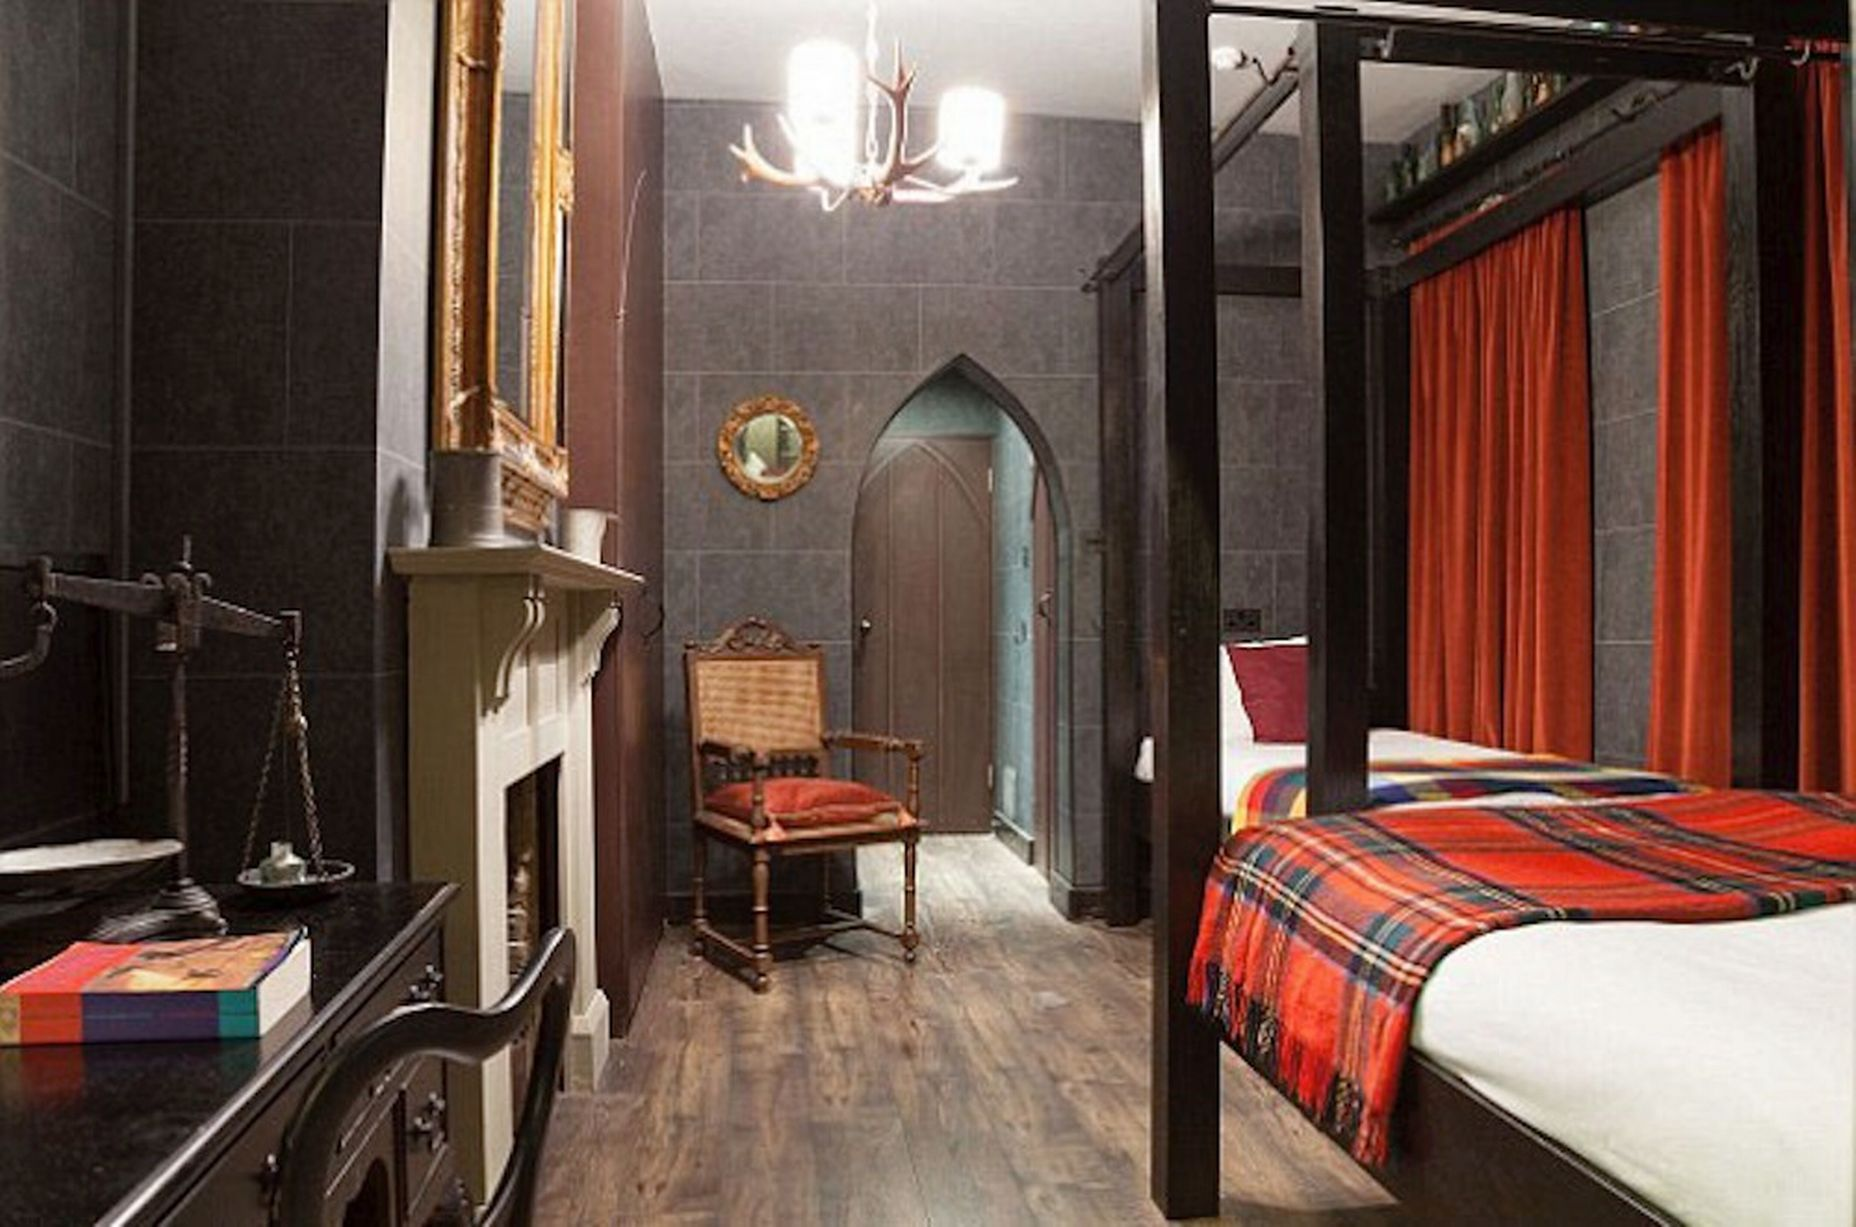 Harry Potter Themed Georgian House Hotel Half Of Me Is Like Wow This Is Really Expensive And Ki Harry Potter Bedroom Decor Georgian Homes Themed Hotel Rooms